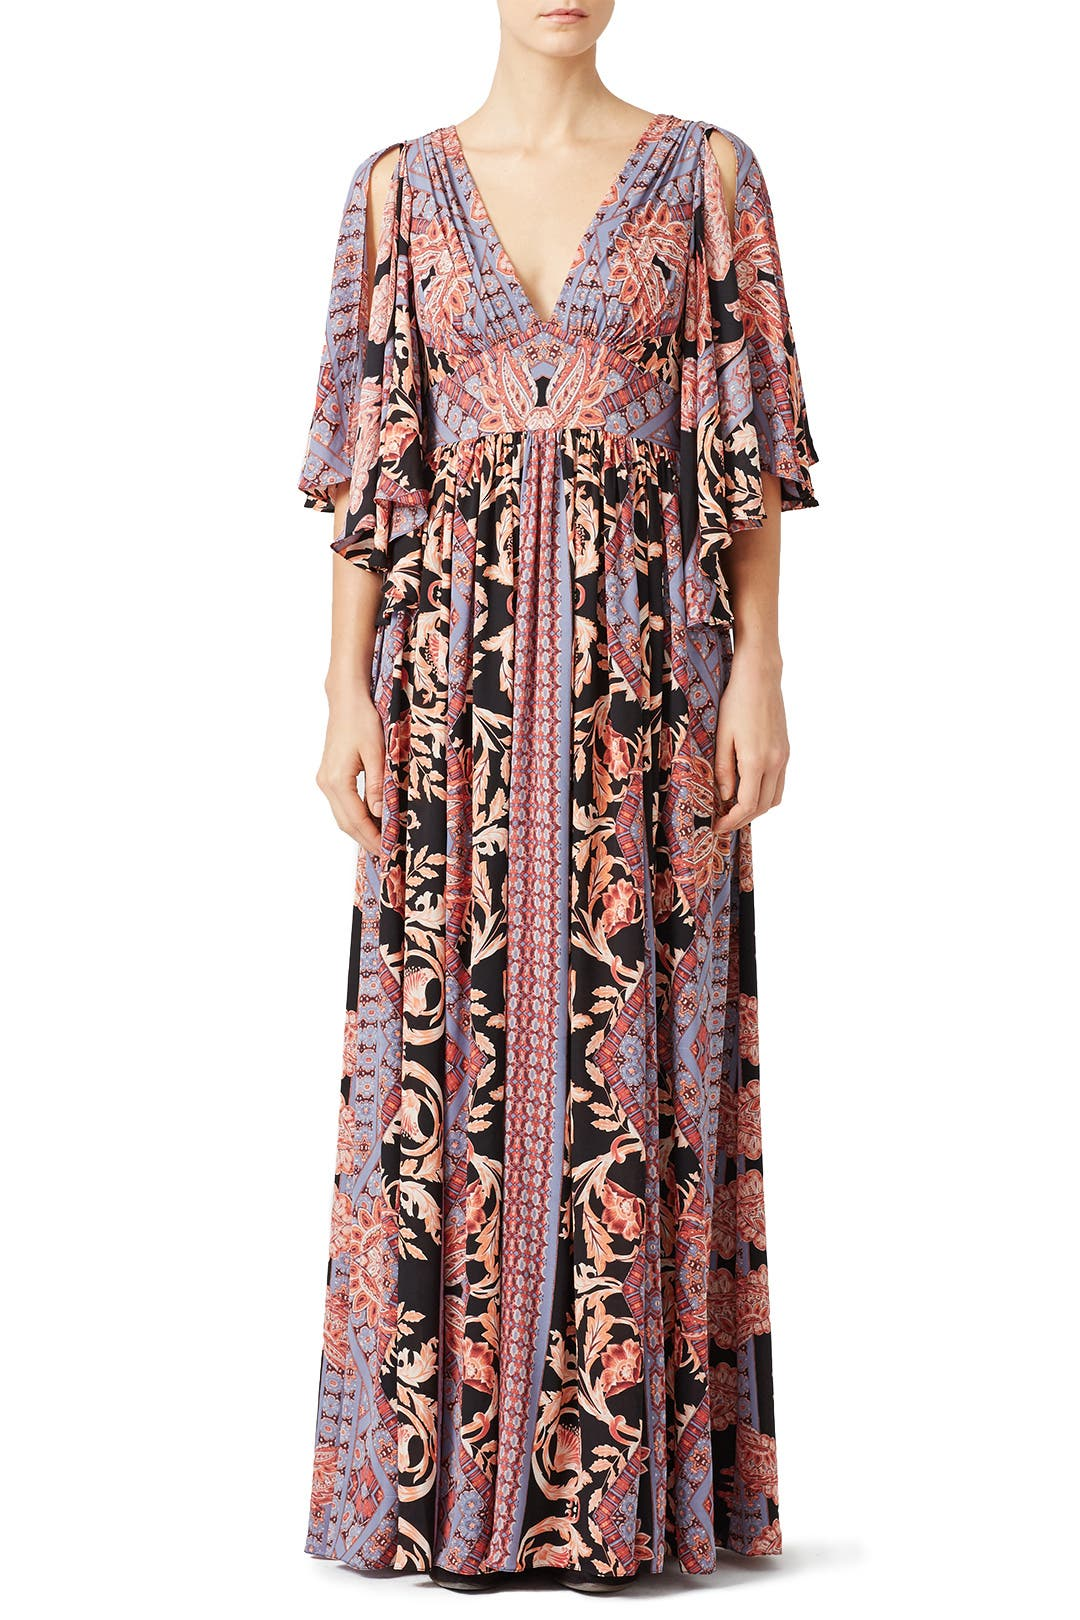 Free People Printed Fern Maxi Party Dress